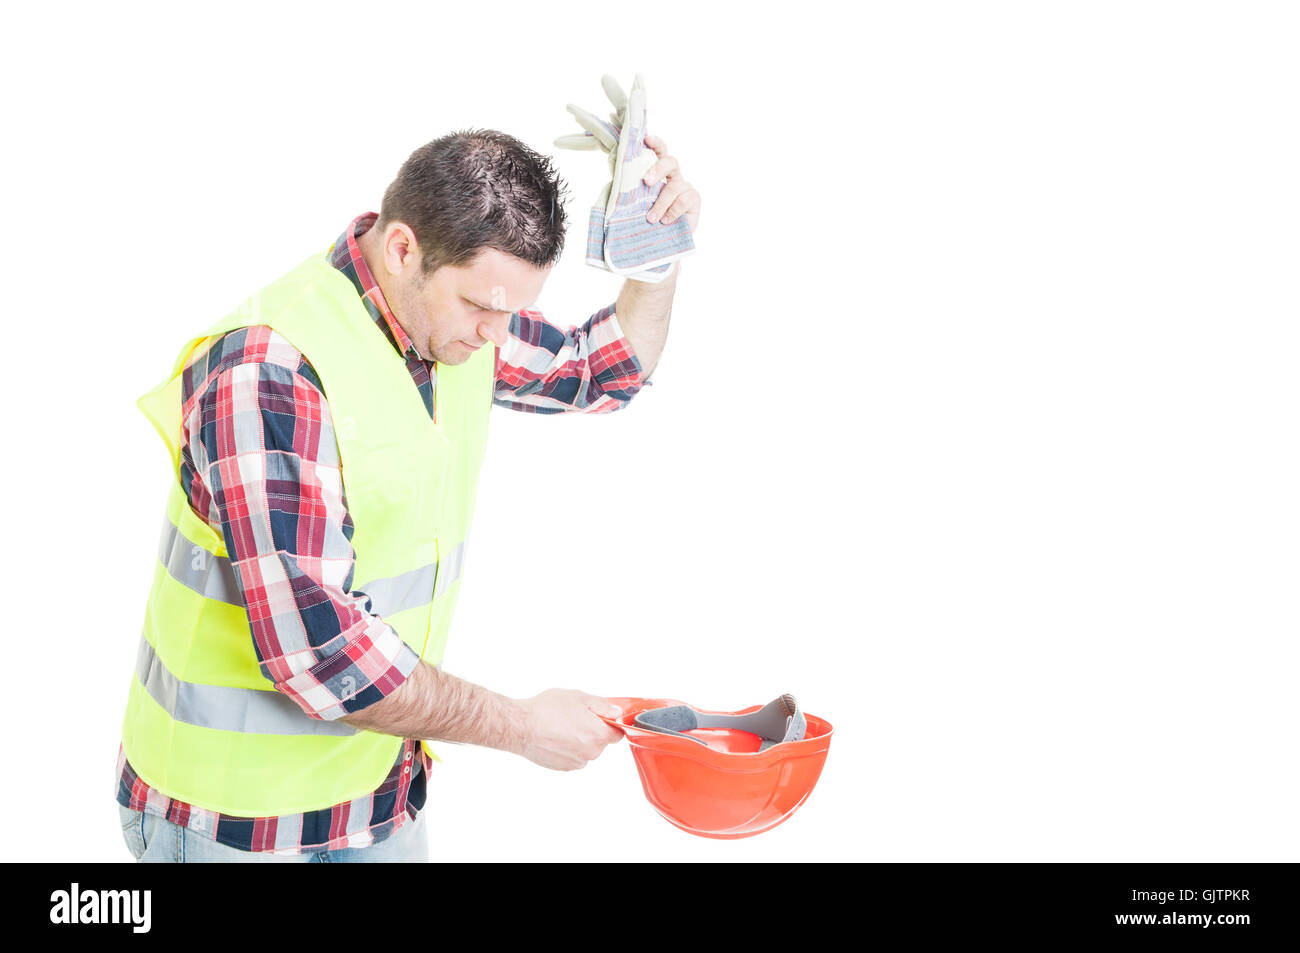 Angry builder throwing his gloves into helmet as frustration concept isolated on white background with copyspace - Stock Image